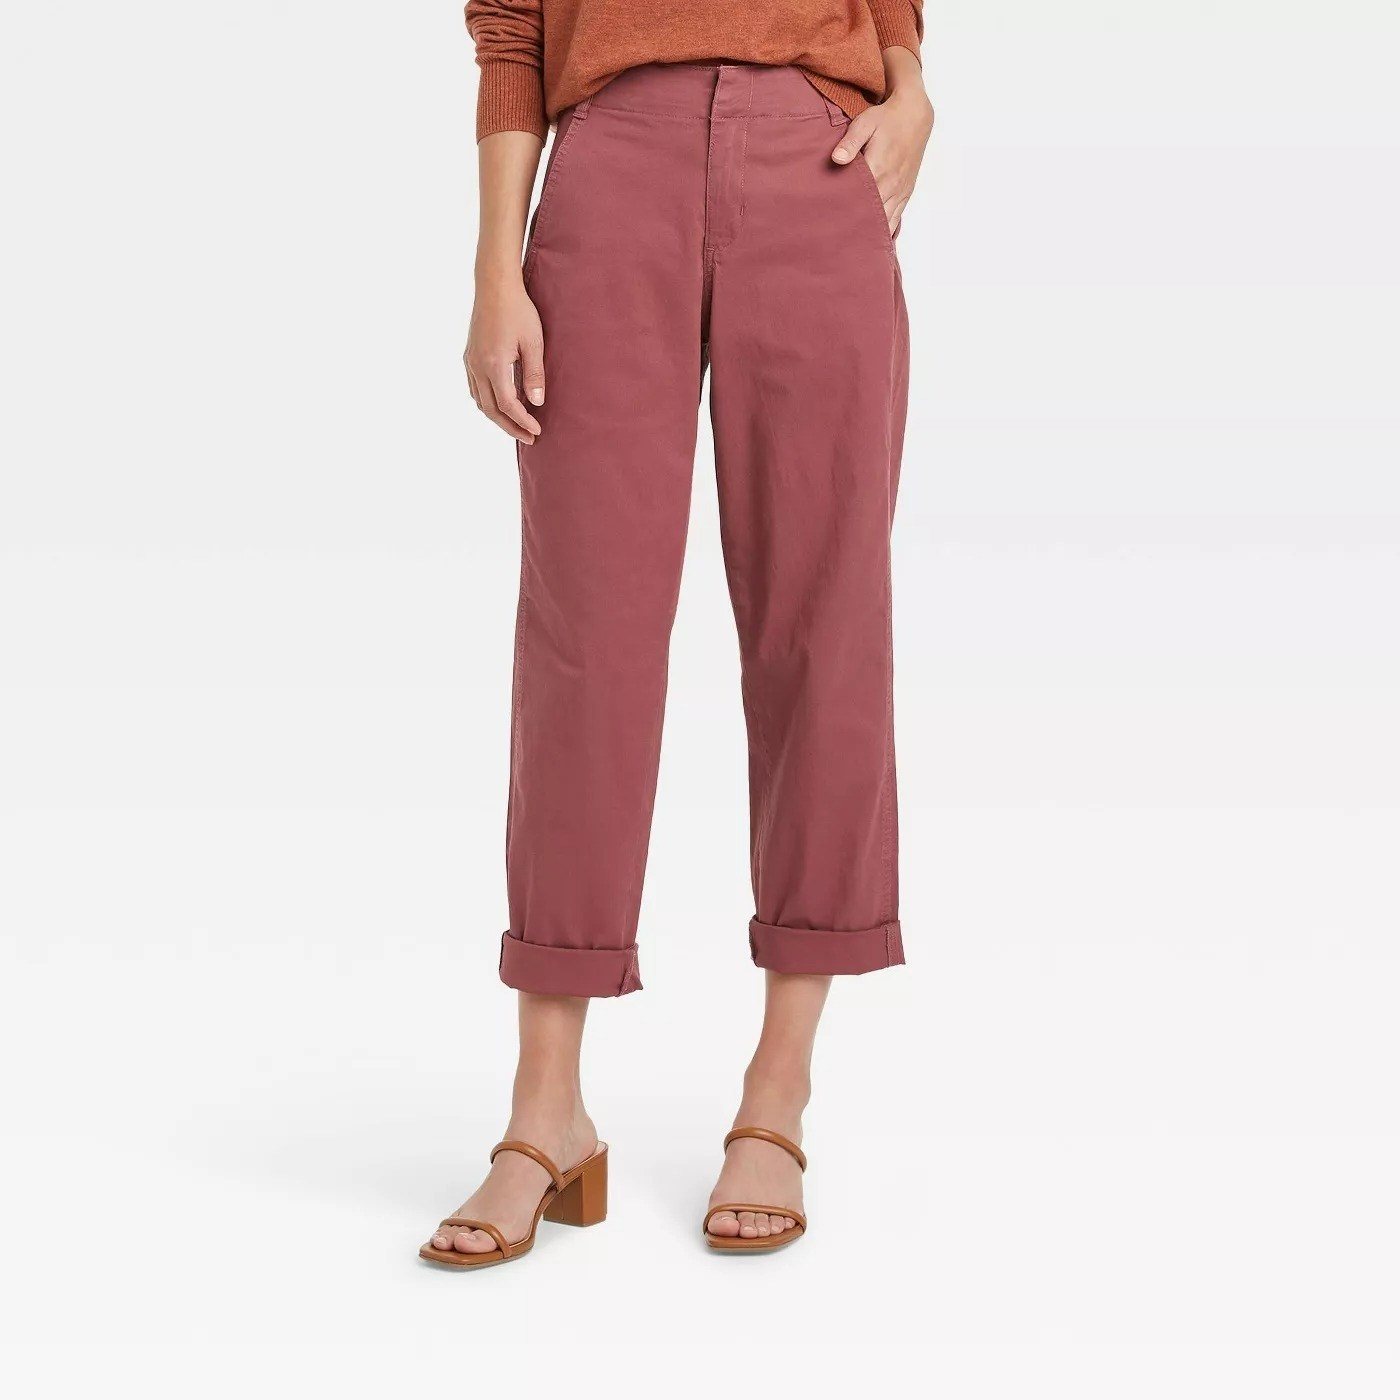 Model wearing dark pink pants, two pockets at the top